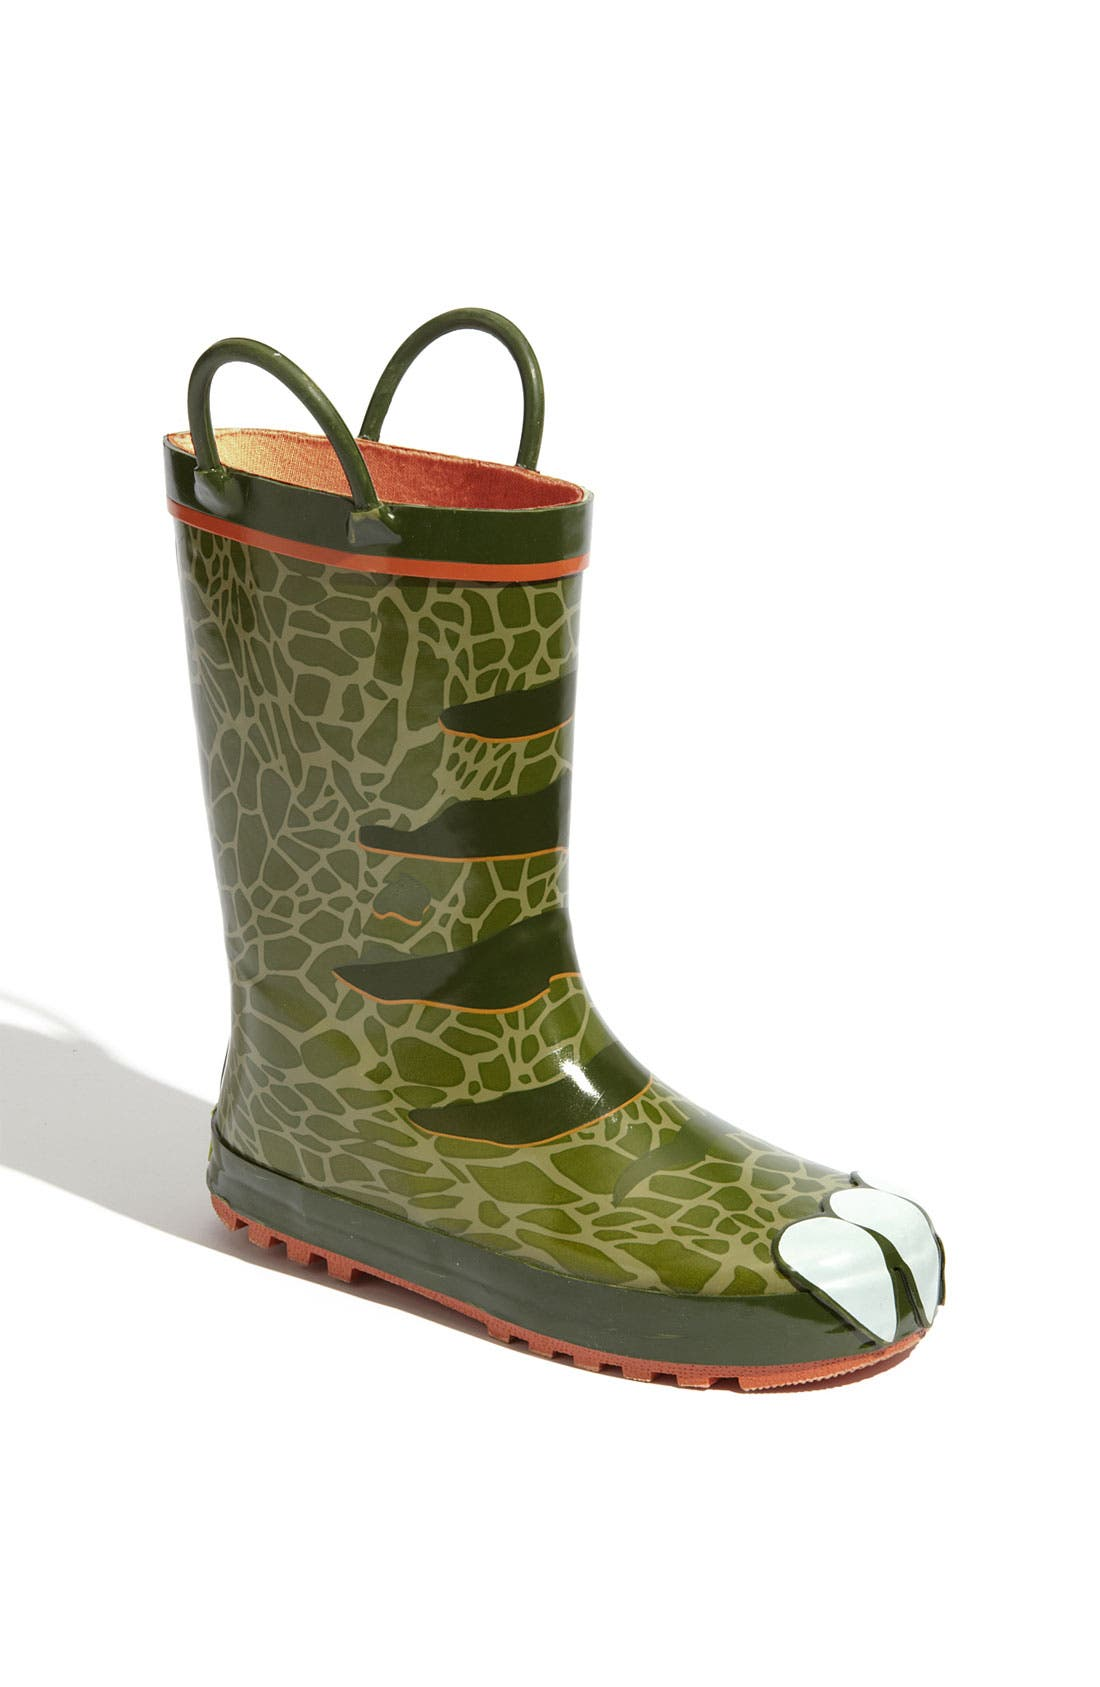 Alternate Image 1 Selected - Western Chief 'Dino' Rain Boot (Walker, Toddler & Little Kid)